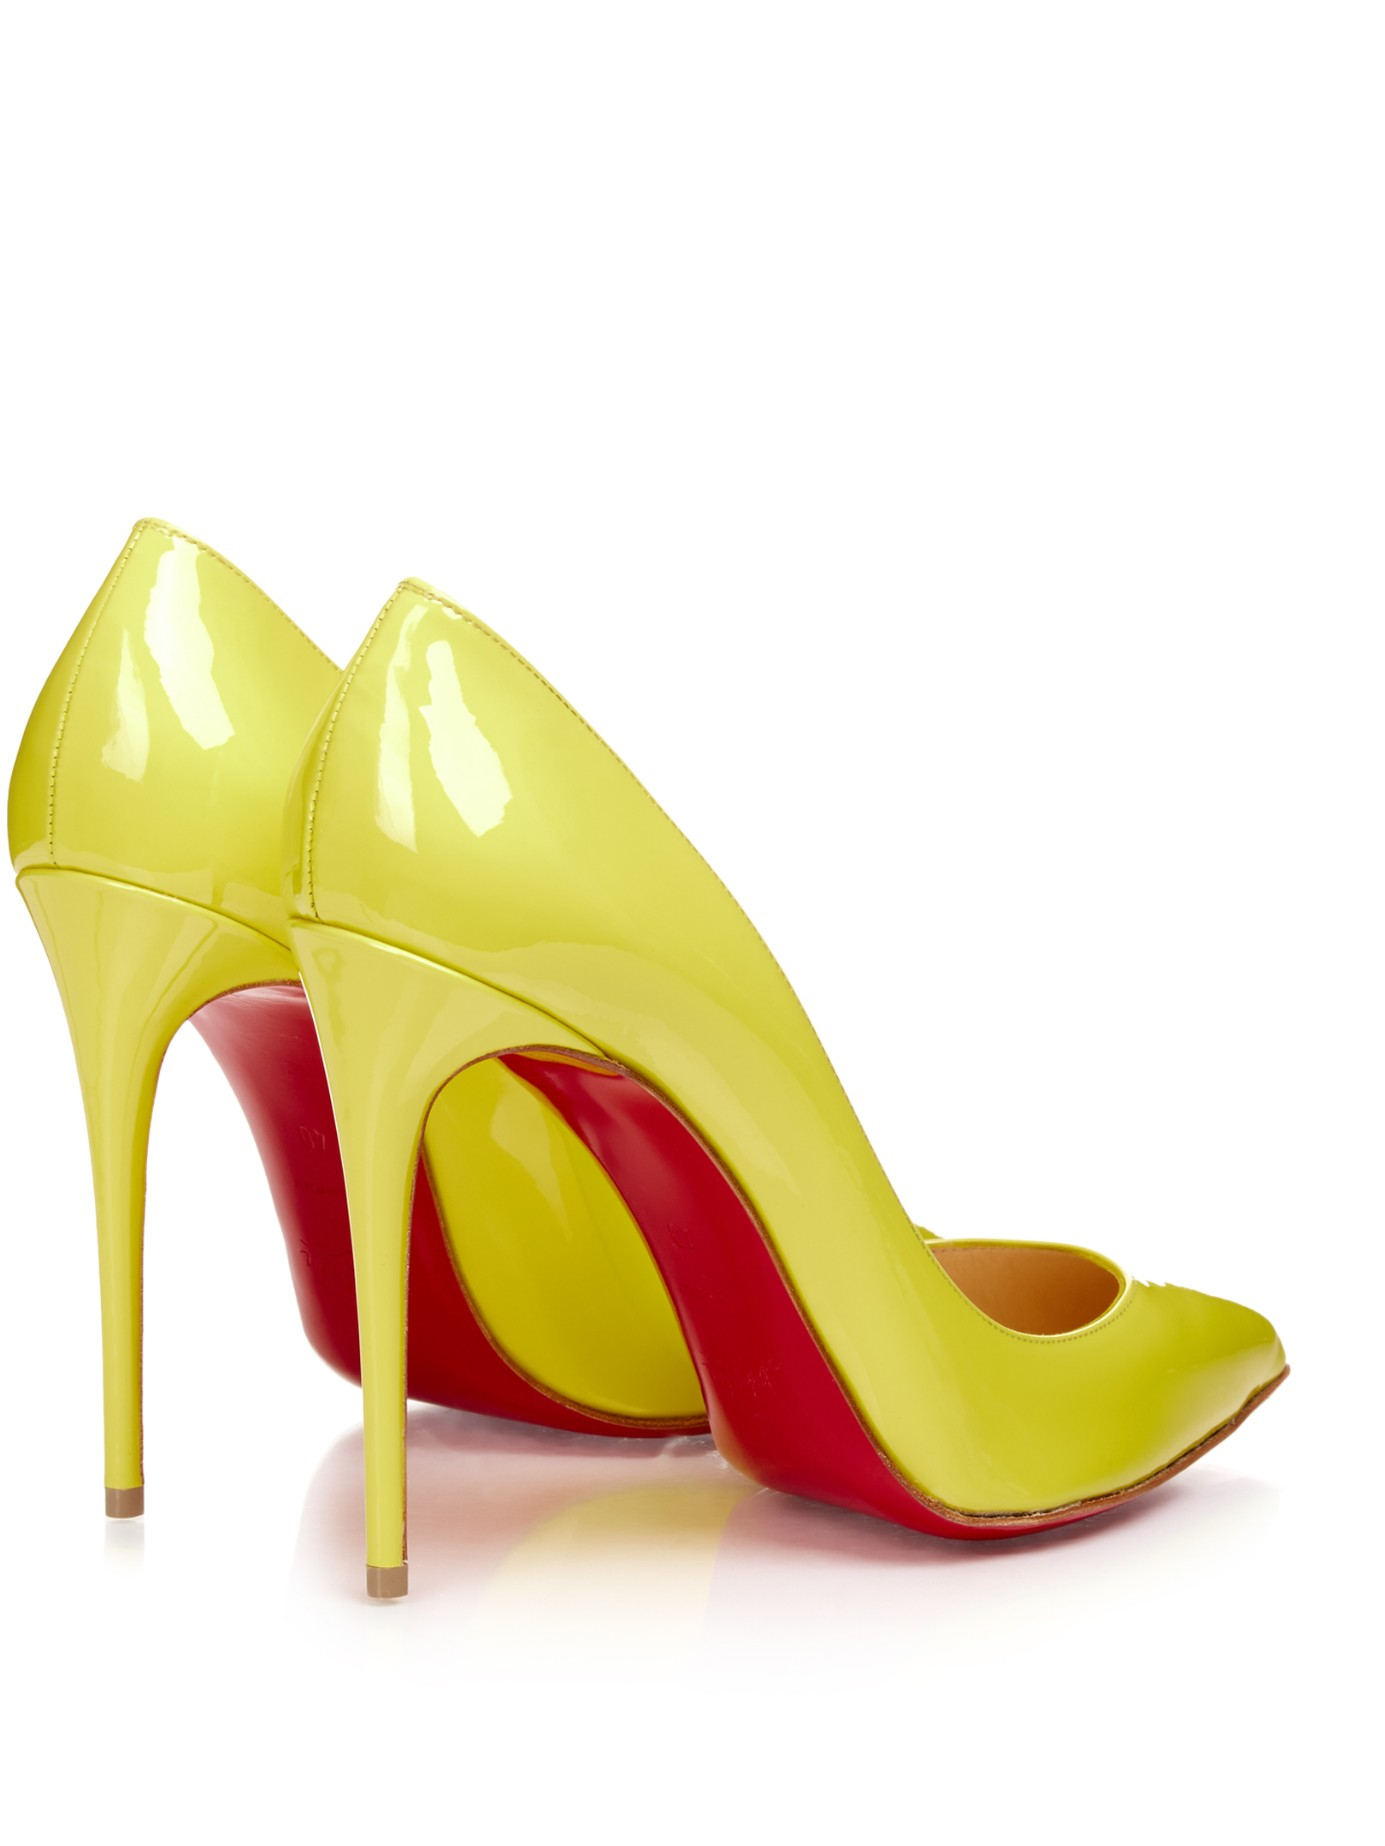 f1d113c24 Gallery. Previously sold at: MATCHESFASHION.COM · Women's Yellow Heels  Women's Christian Louboutin ...